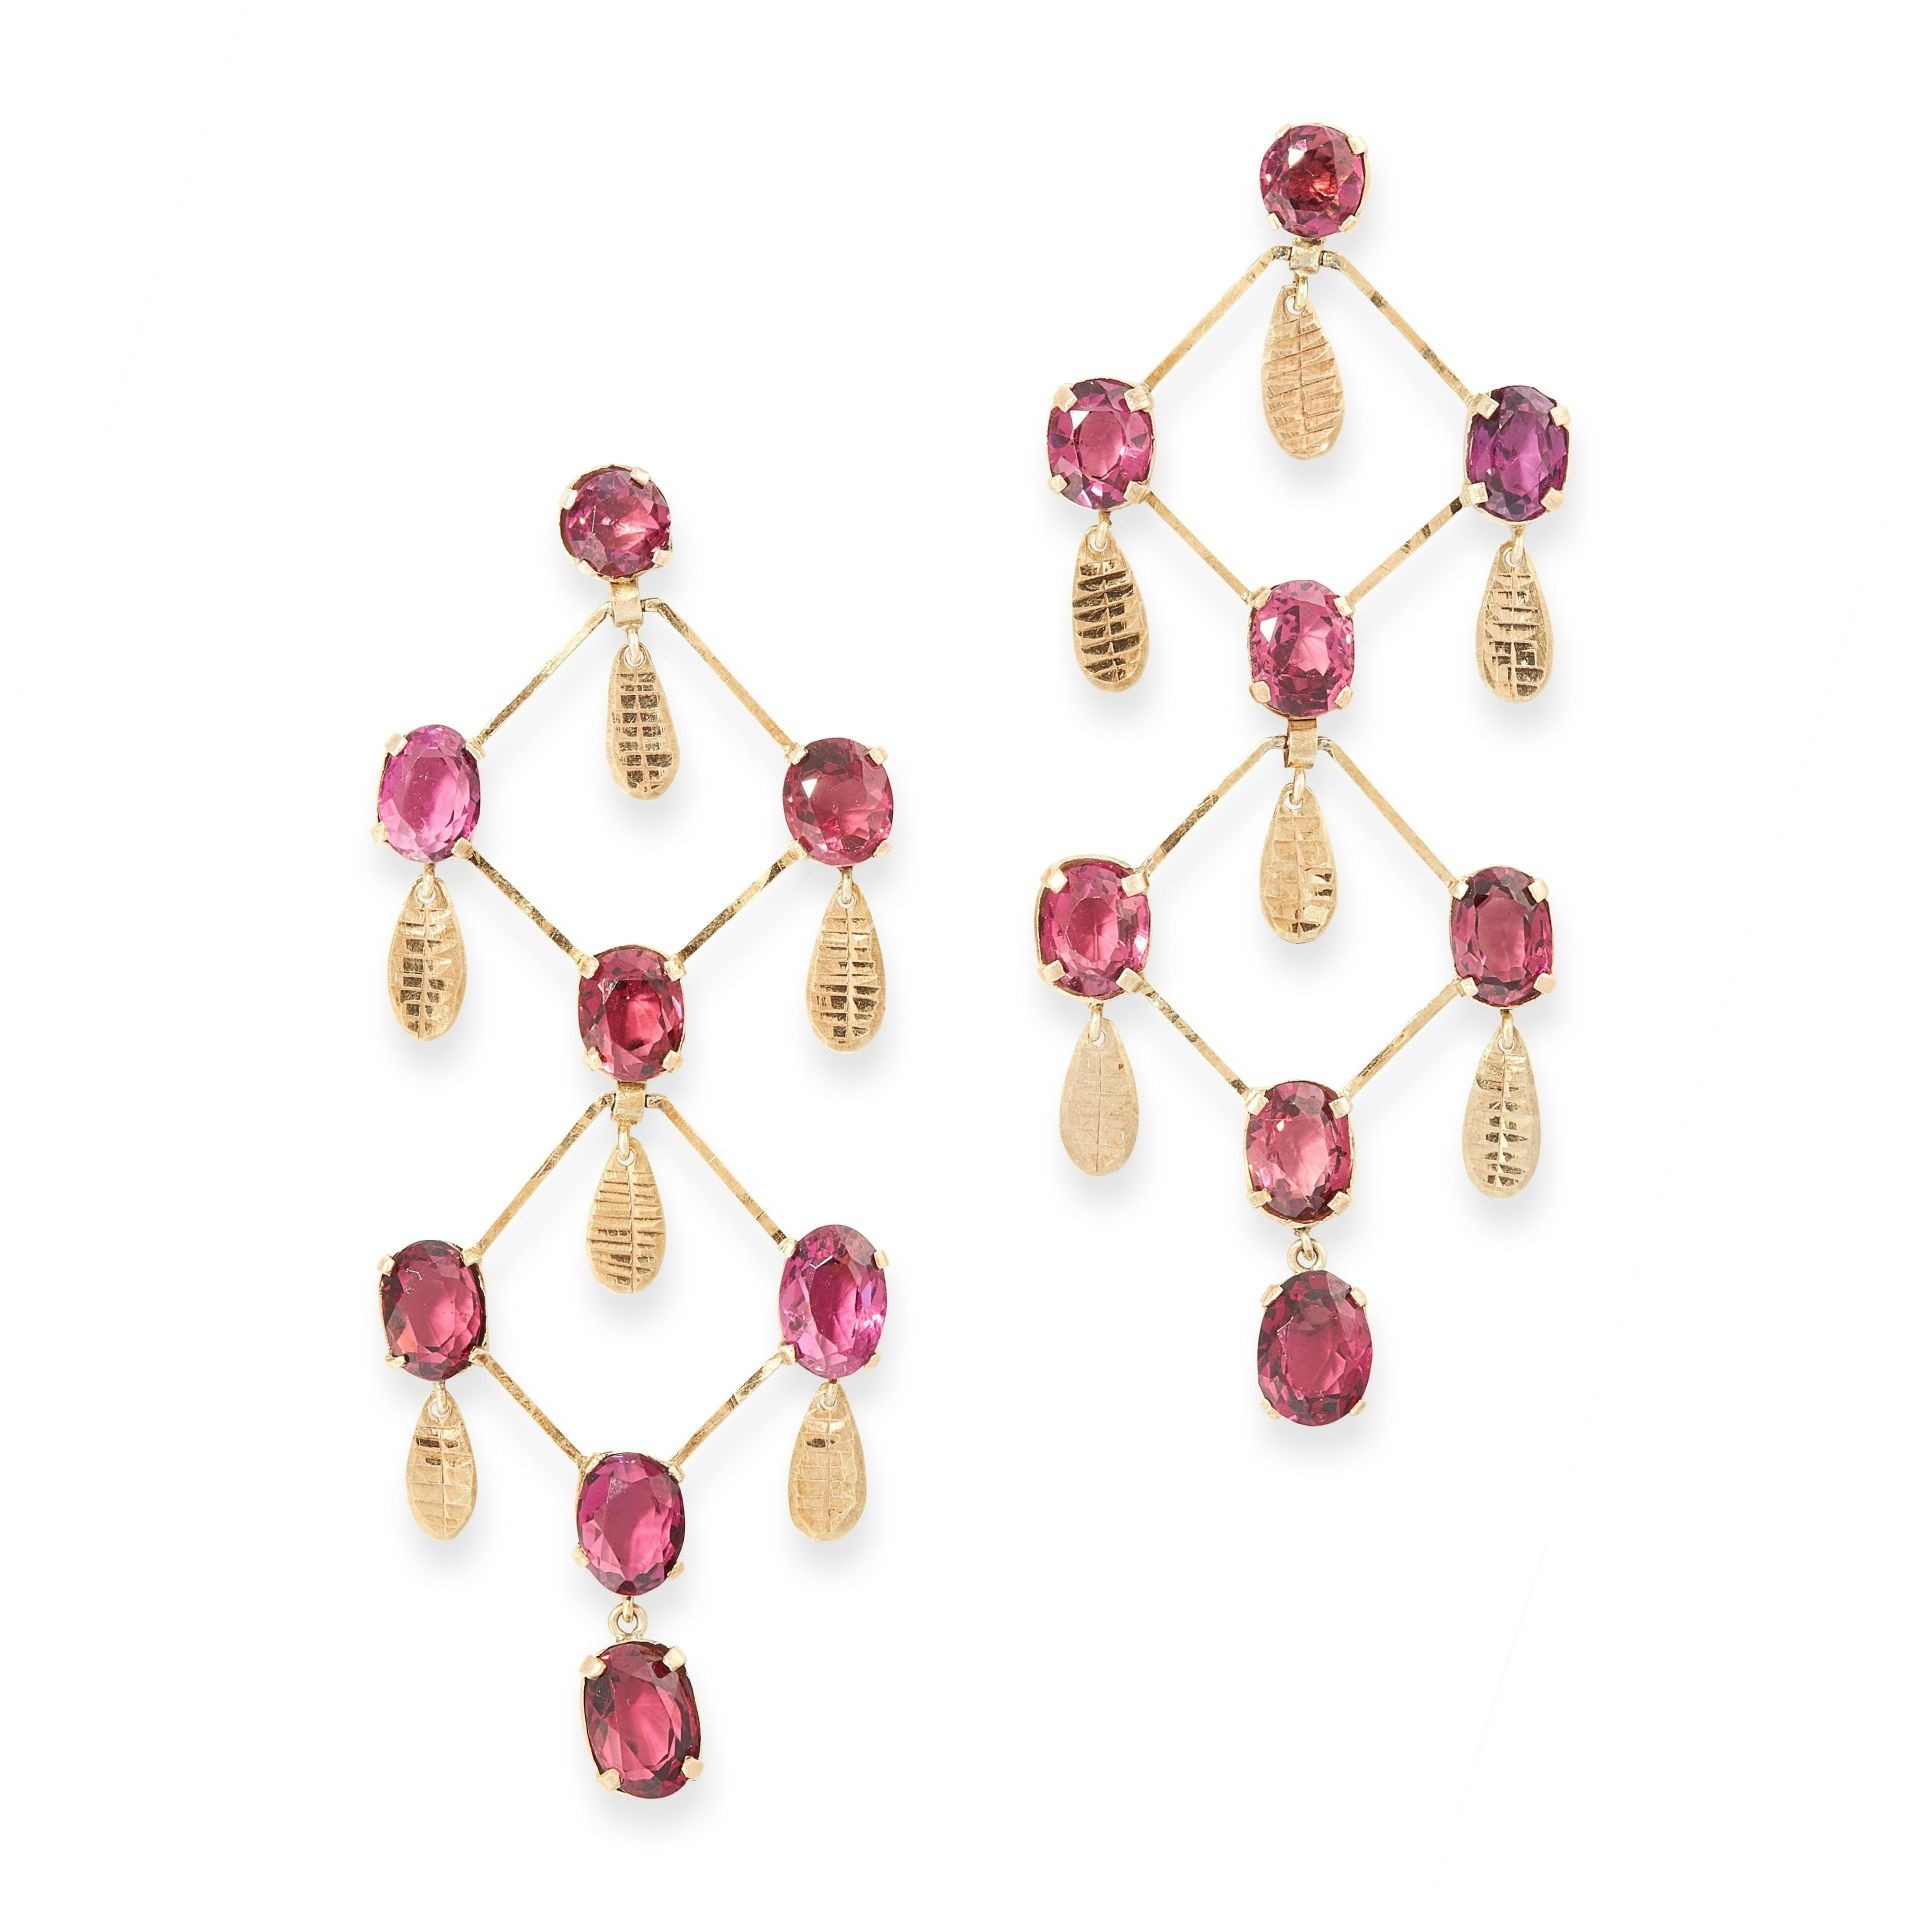 A PAIR OF GARNET CHANDELIER EARRINGS, EARLY 20TH CENTURY in yellow gold, the articulated body of